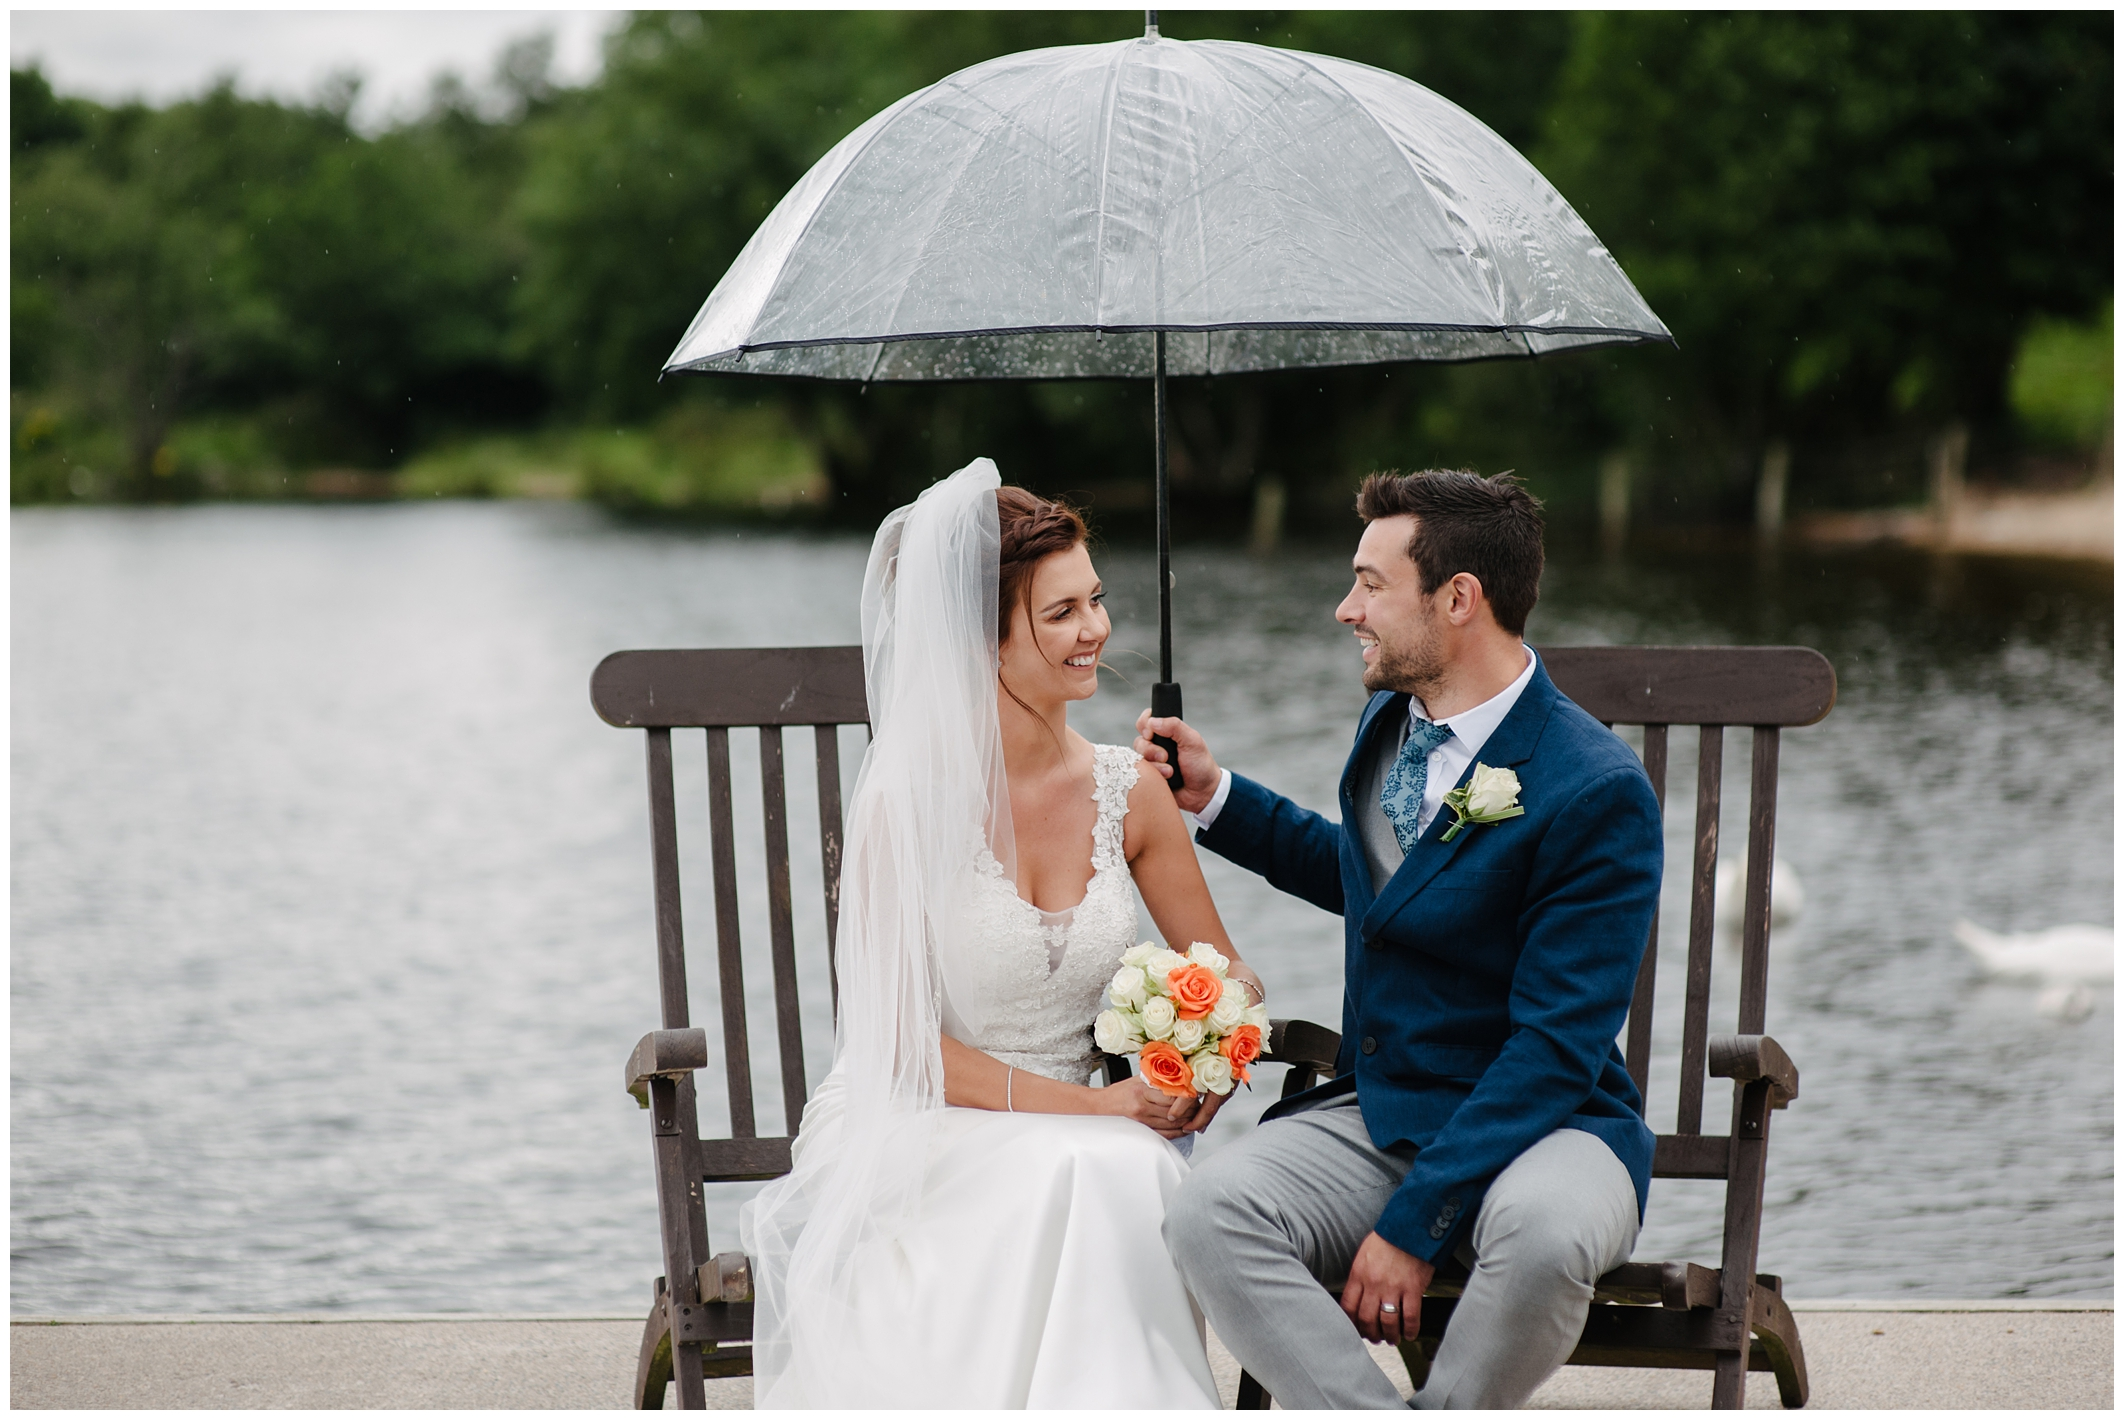 Lynsey_Andy_Rossharbour_Fermanagh_wedding_jude_browne_photography_0111.jpg